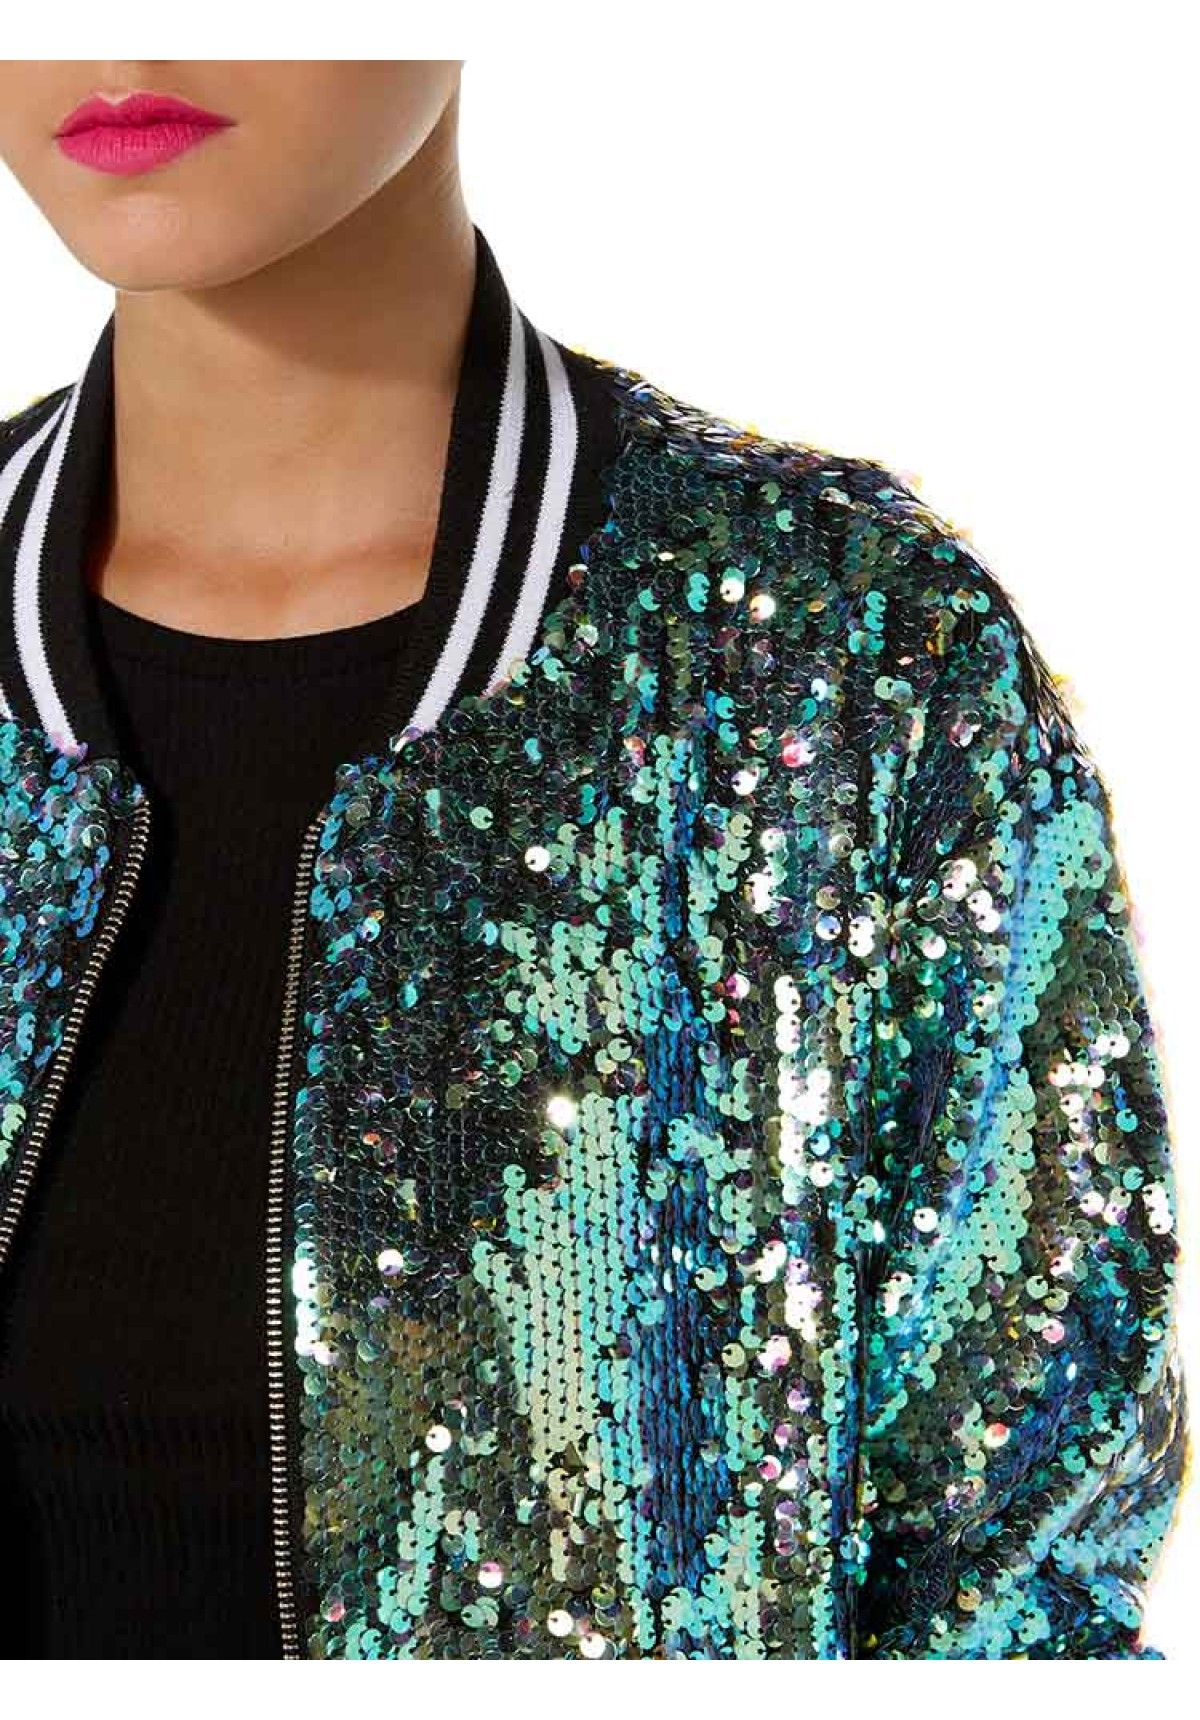 a3e18764 Mermaid Sequin Bomber Jacket | Style & More | Fashion, Mermaid ...